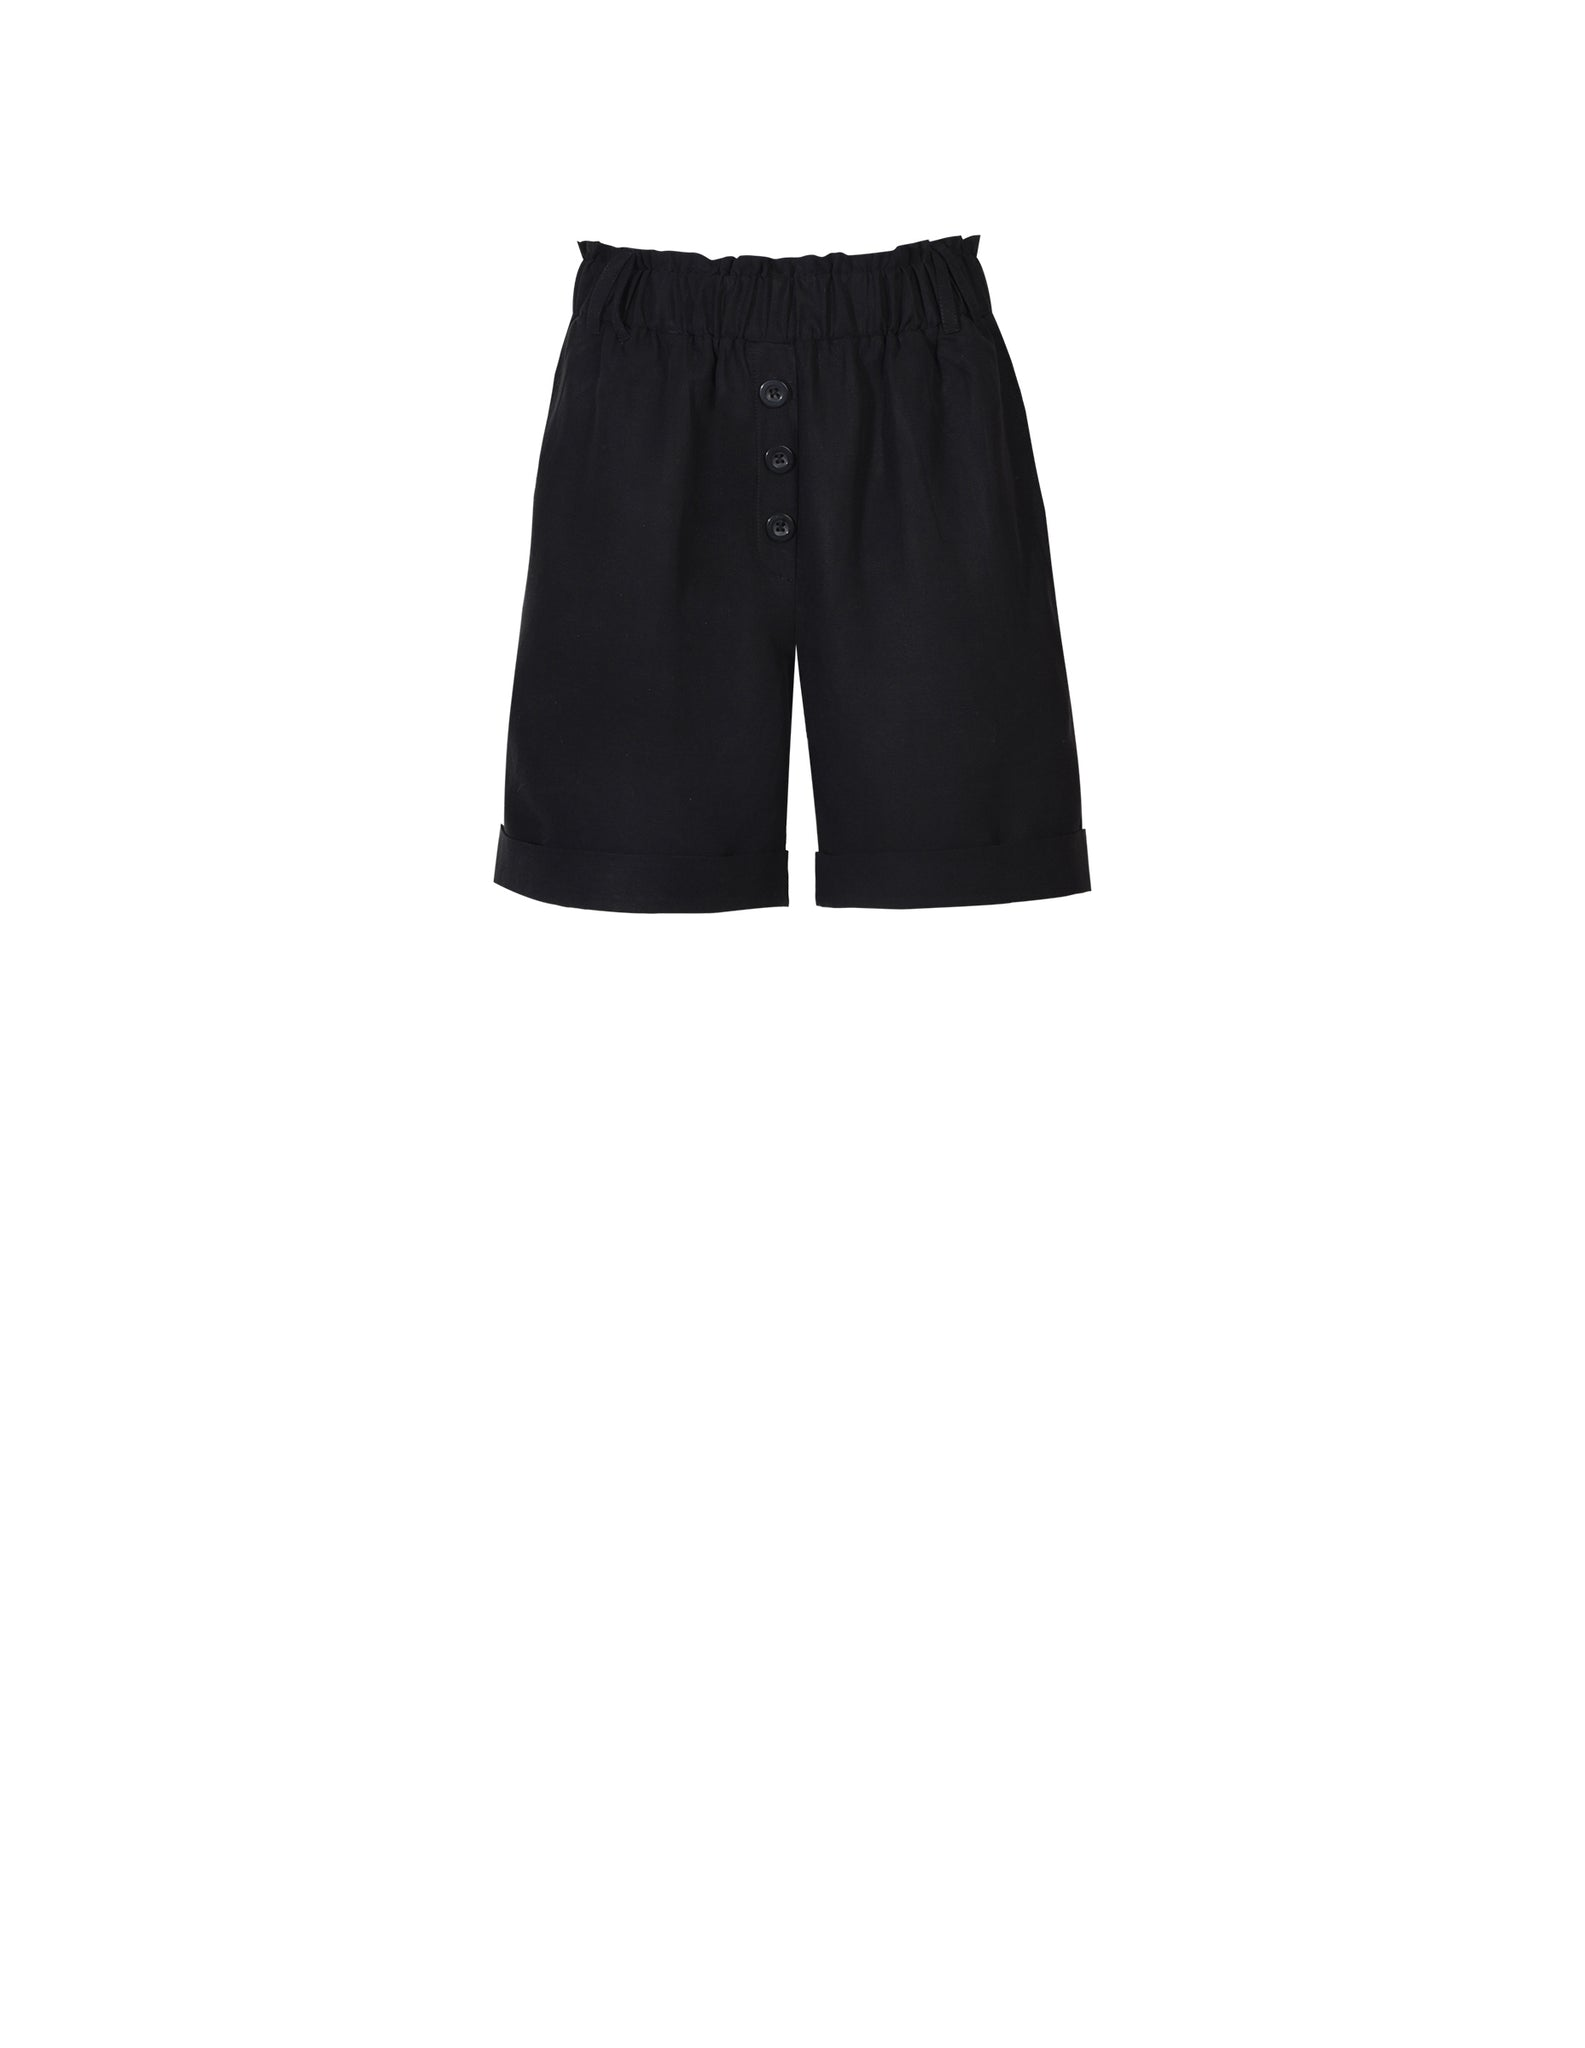 Gretta Short in Black - ISLE & ROW